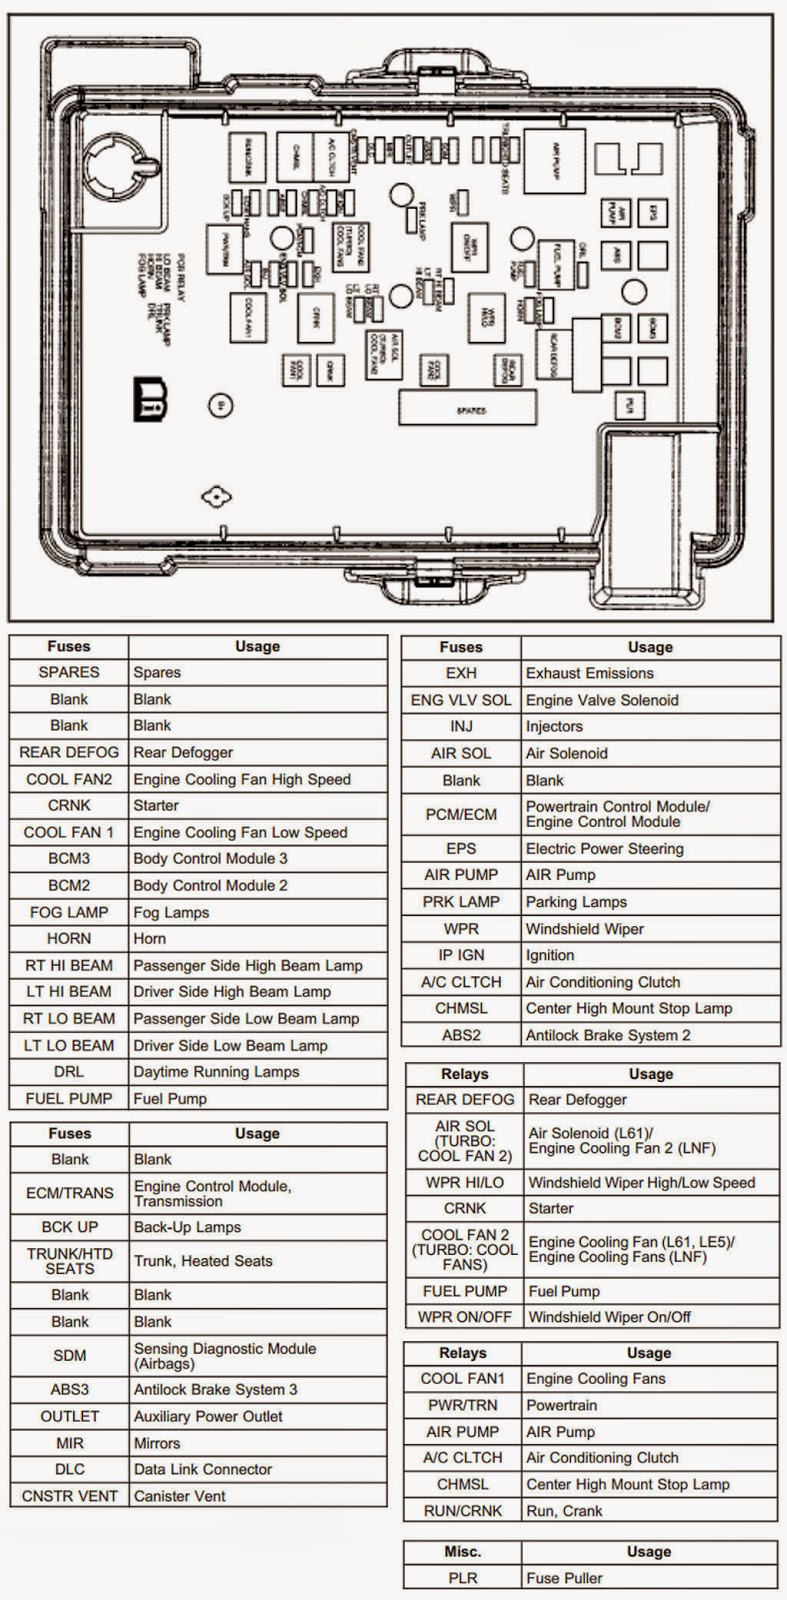 medium resolution of 2006 chevy cobalt fuse box diagram wiring diagram list2006 cobalt fuse and relay box automotive wiring